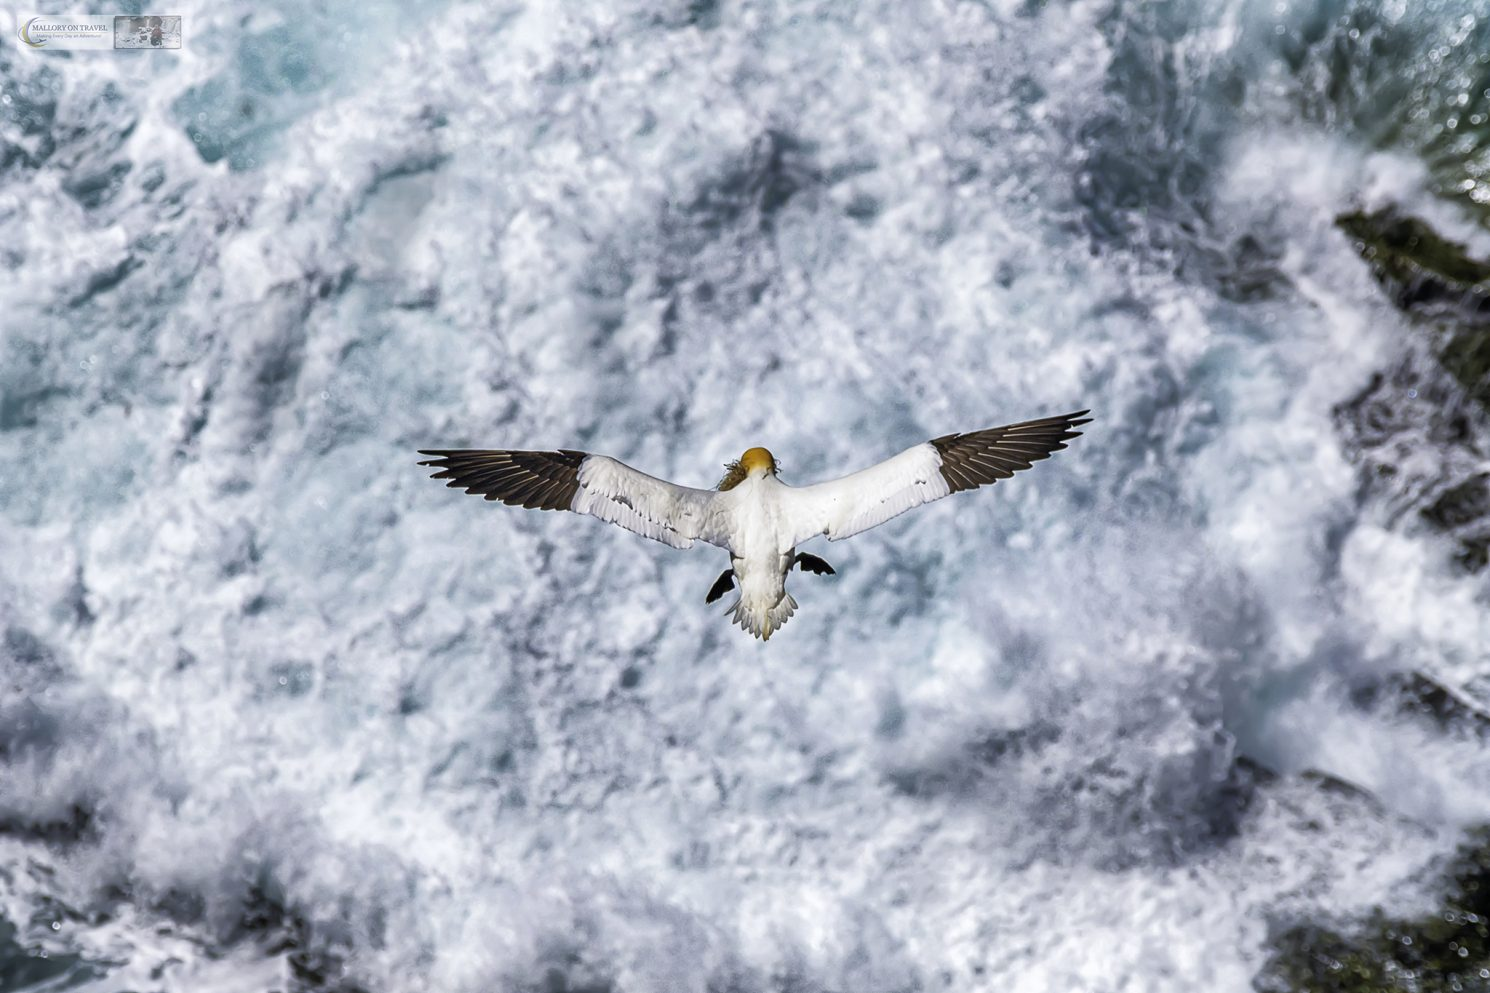 A nesting gannet returning to the rookery on Bird Rock with nesting material at St. Mary's Ecological Reserve on the Avalon Peninsula in the province of Newfoundland and Labrador, Canada on Mallory on Travel adventure travel, photography, travel Iain Mallory_Newfoundland 013